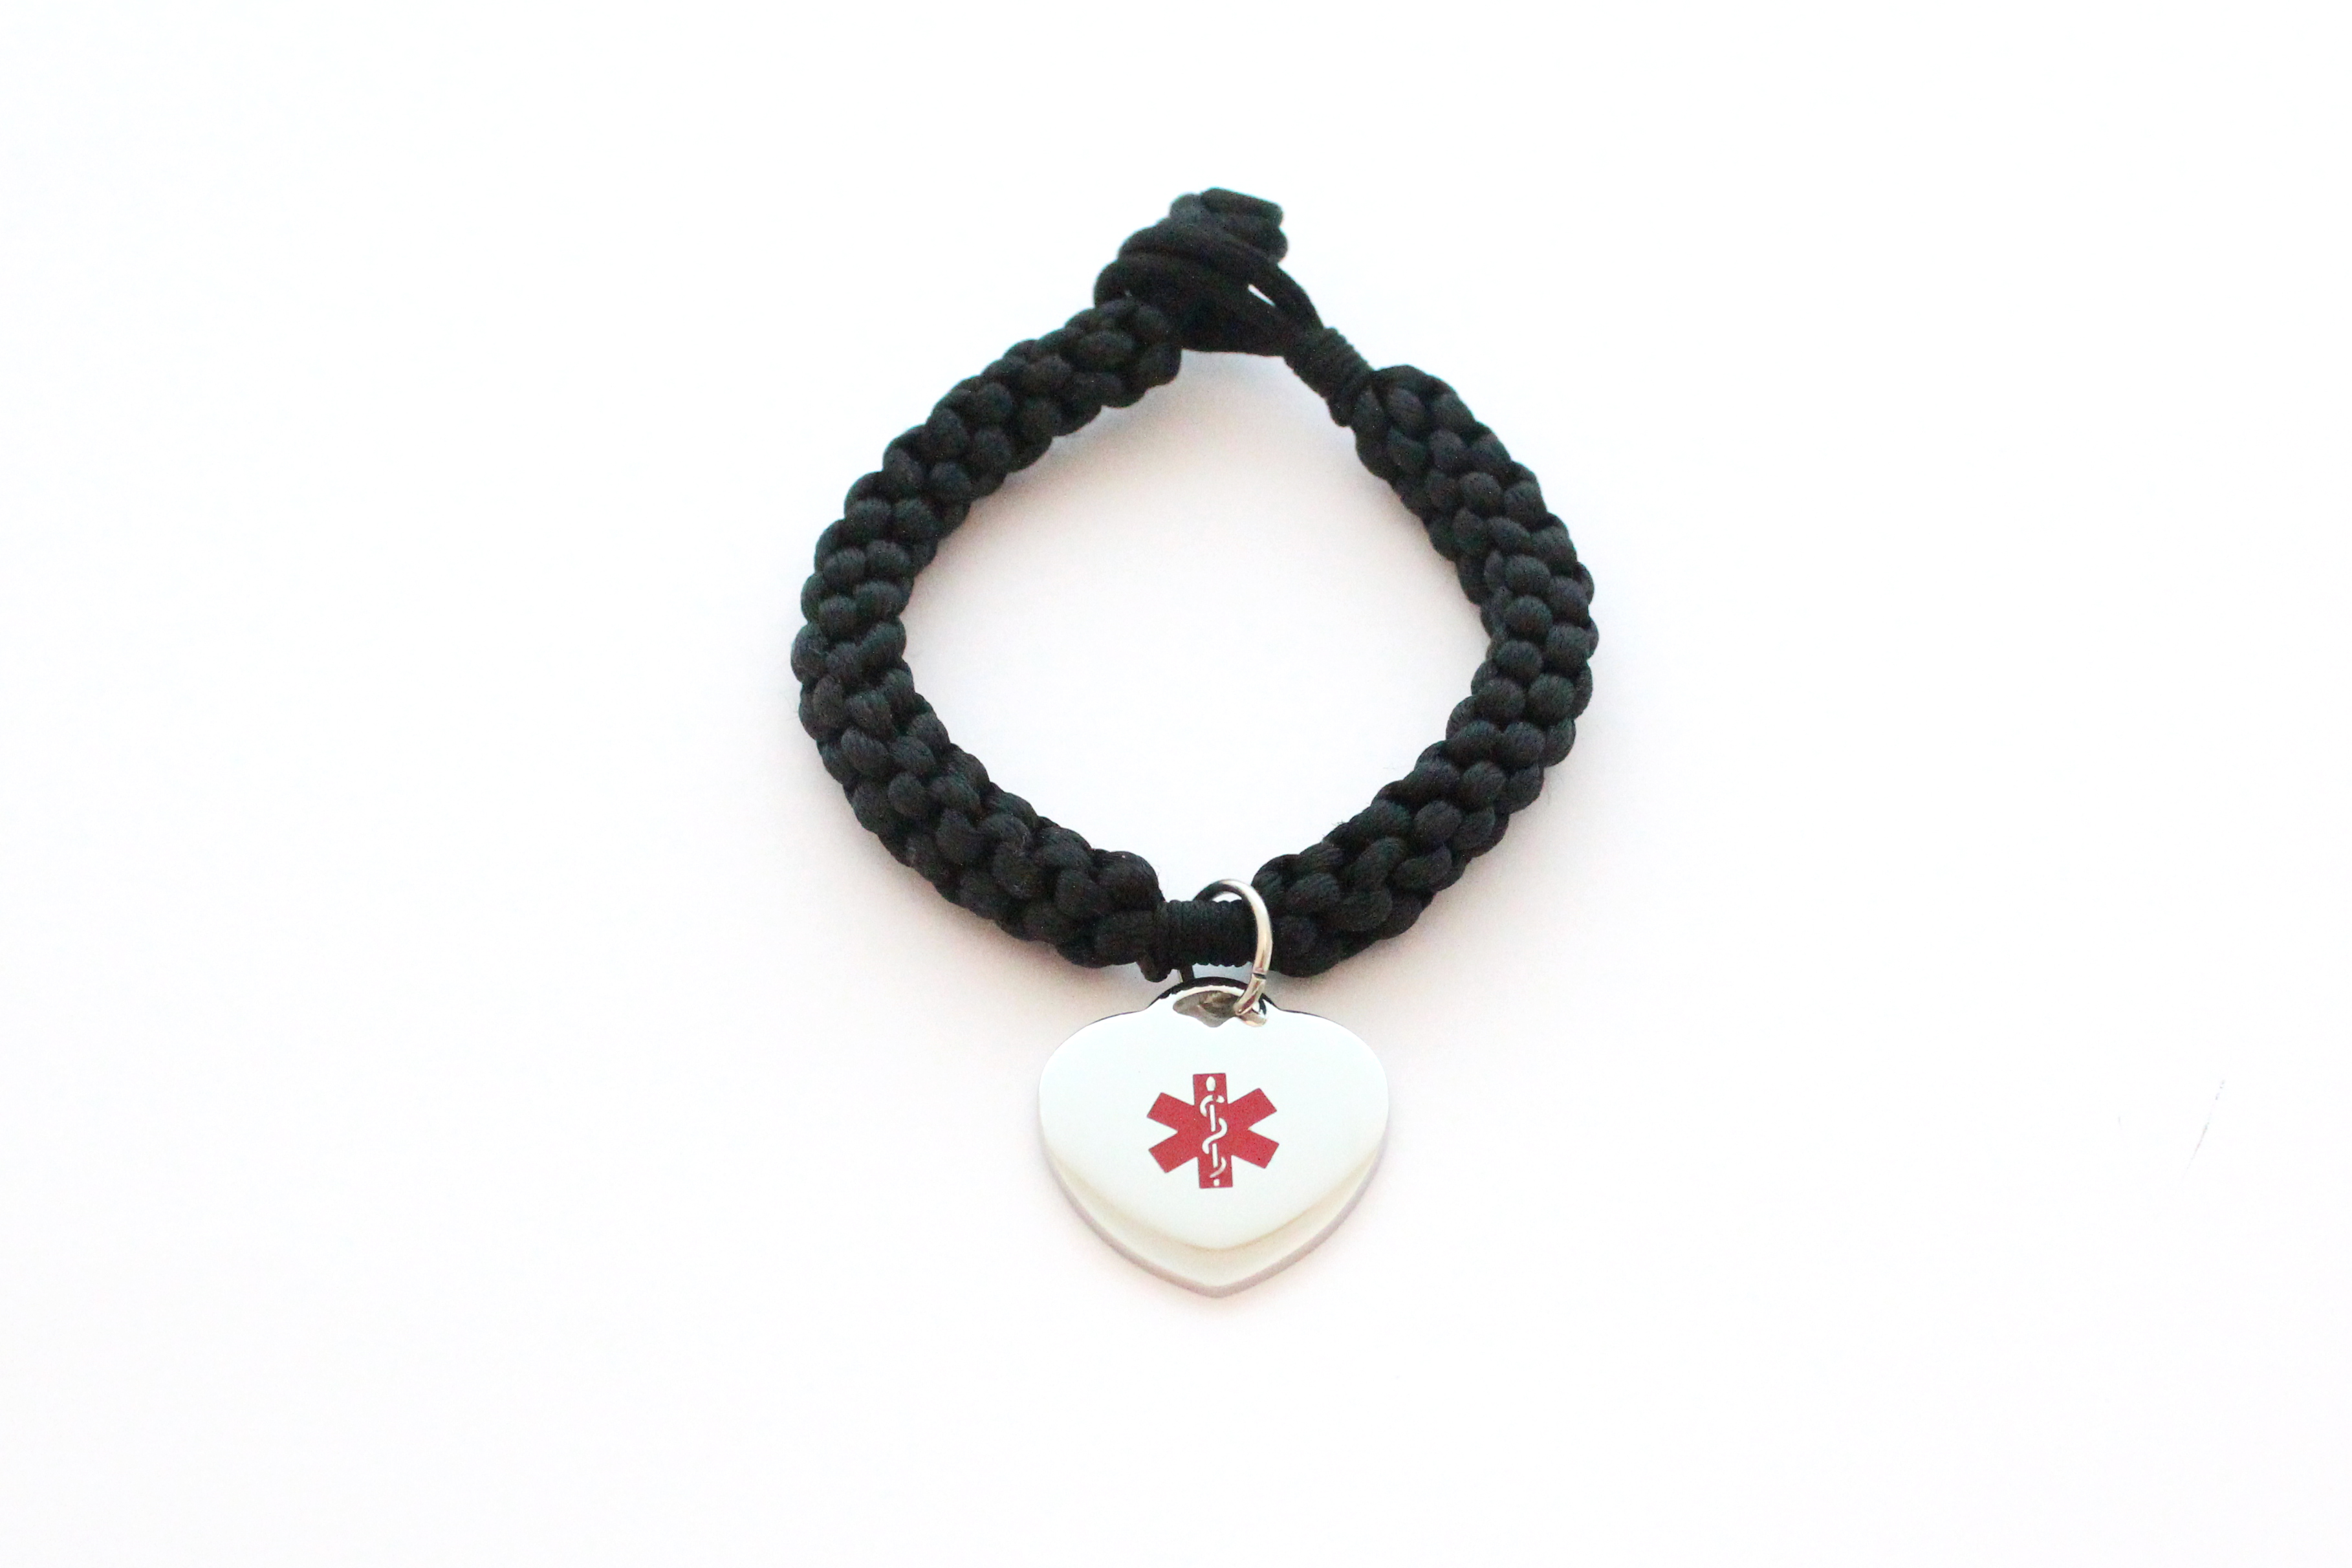 Black Braided Bracelet with Heart Charm - Medical ID